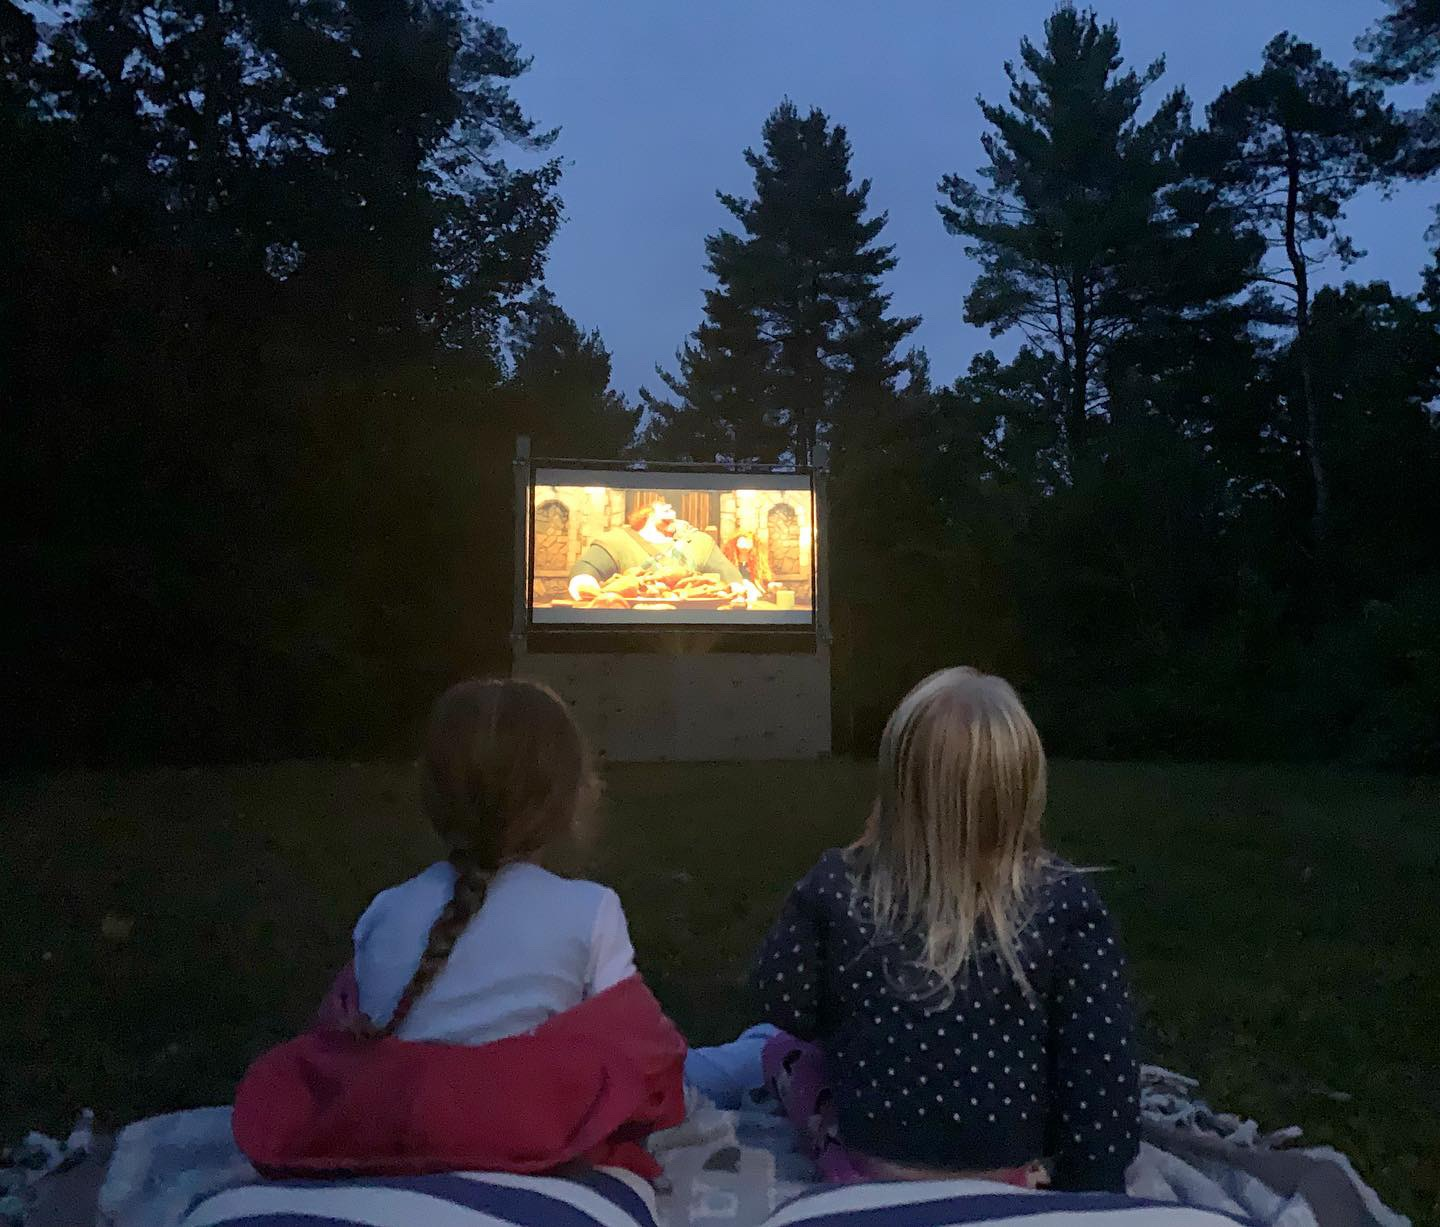 Kids watching outdoor movie